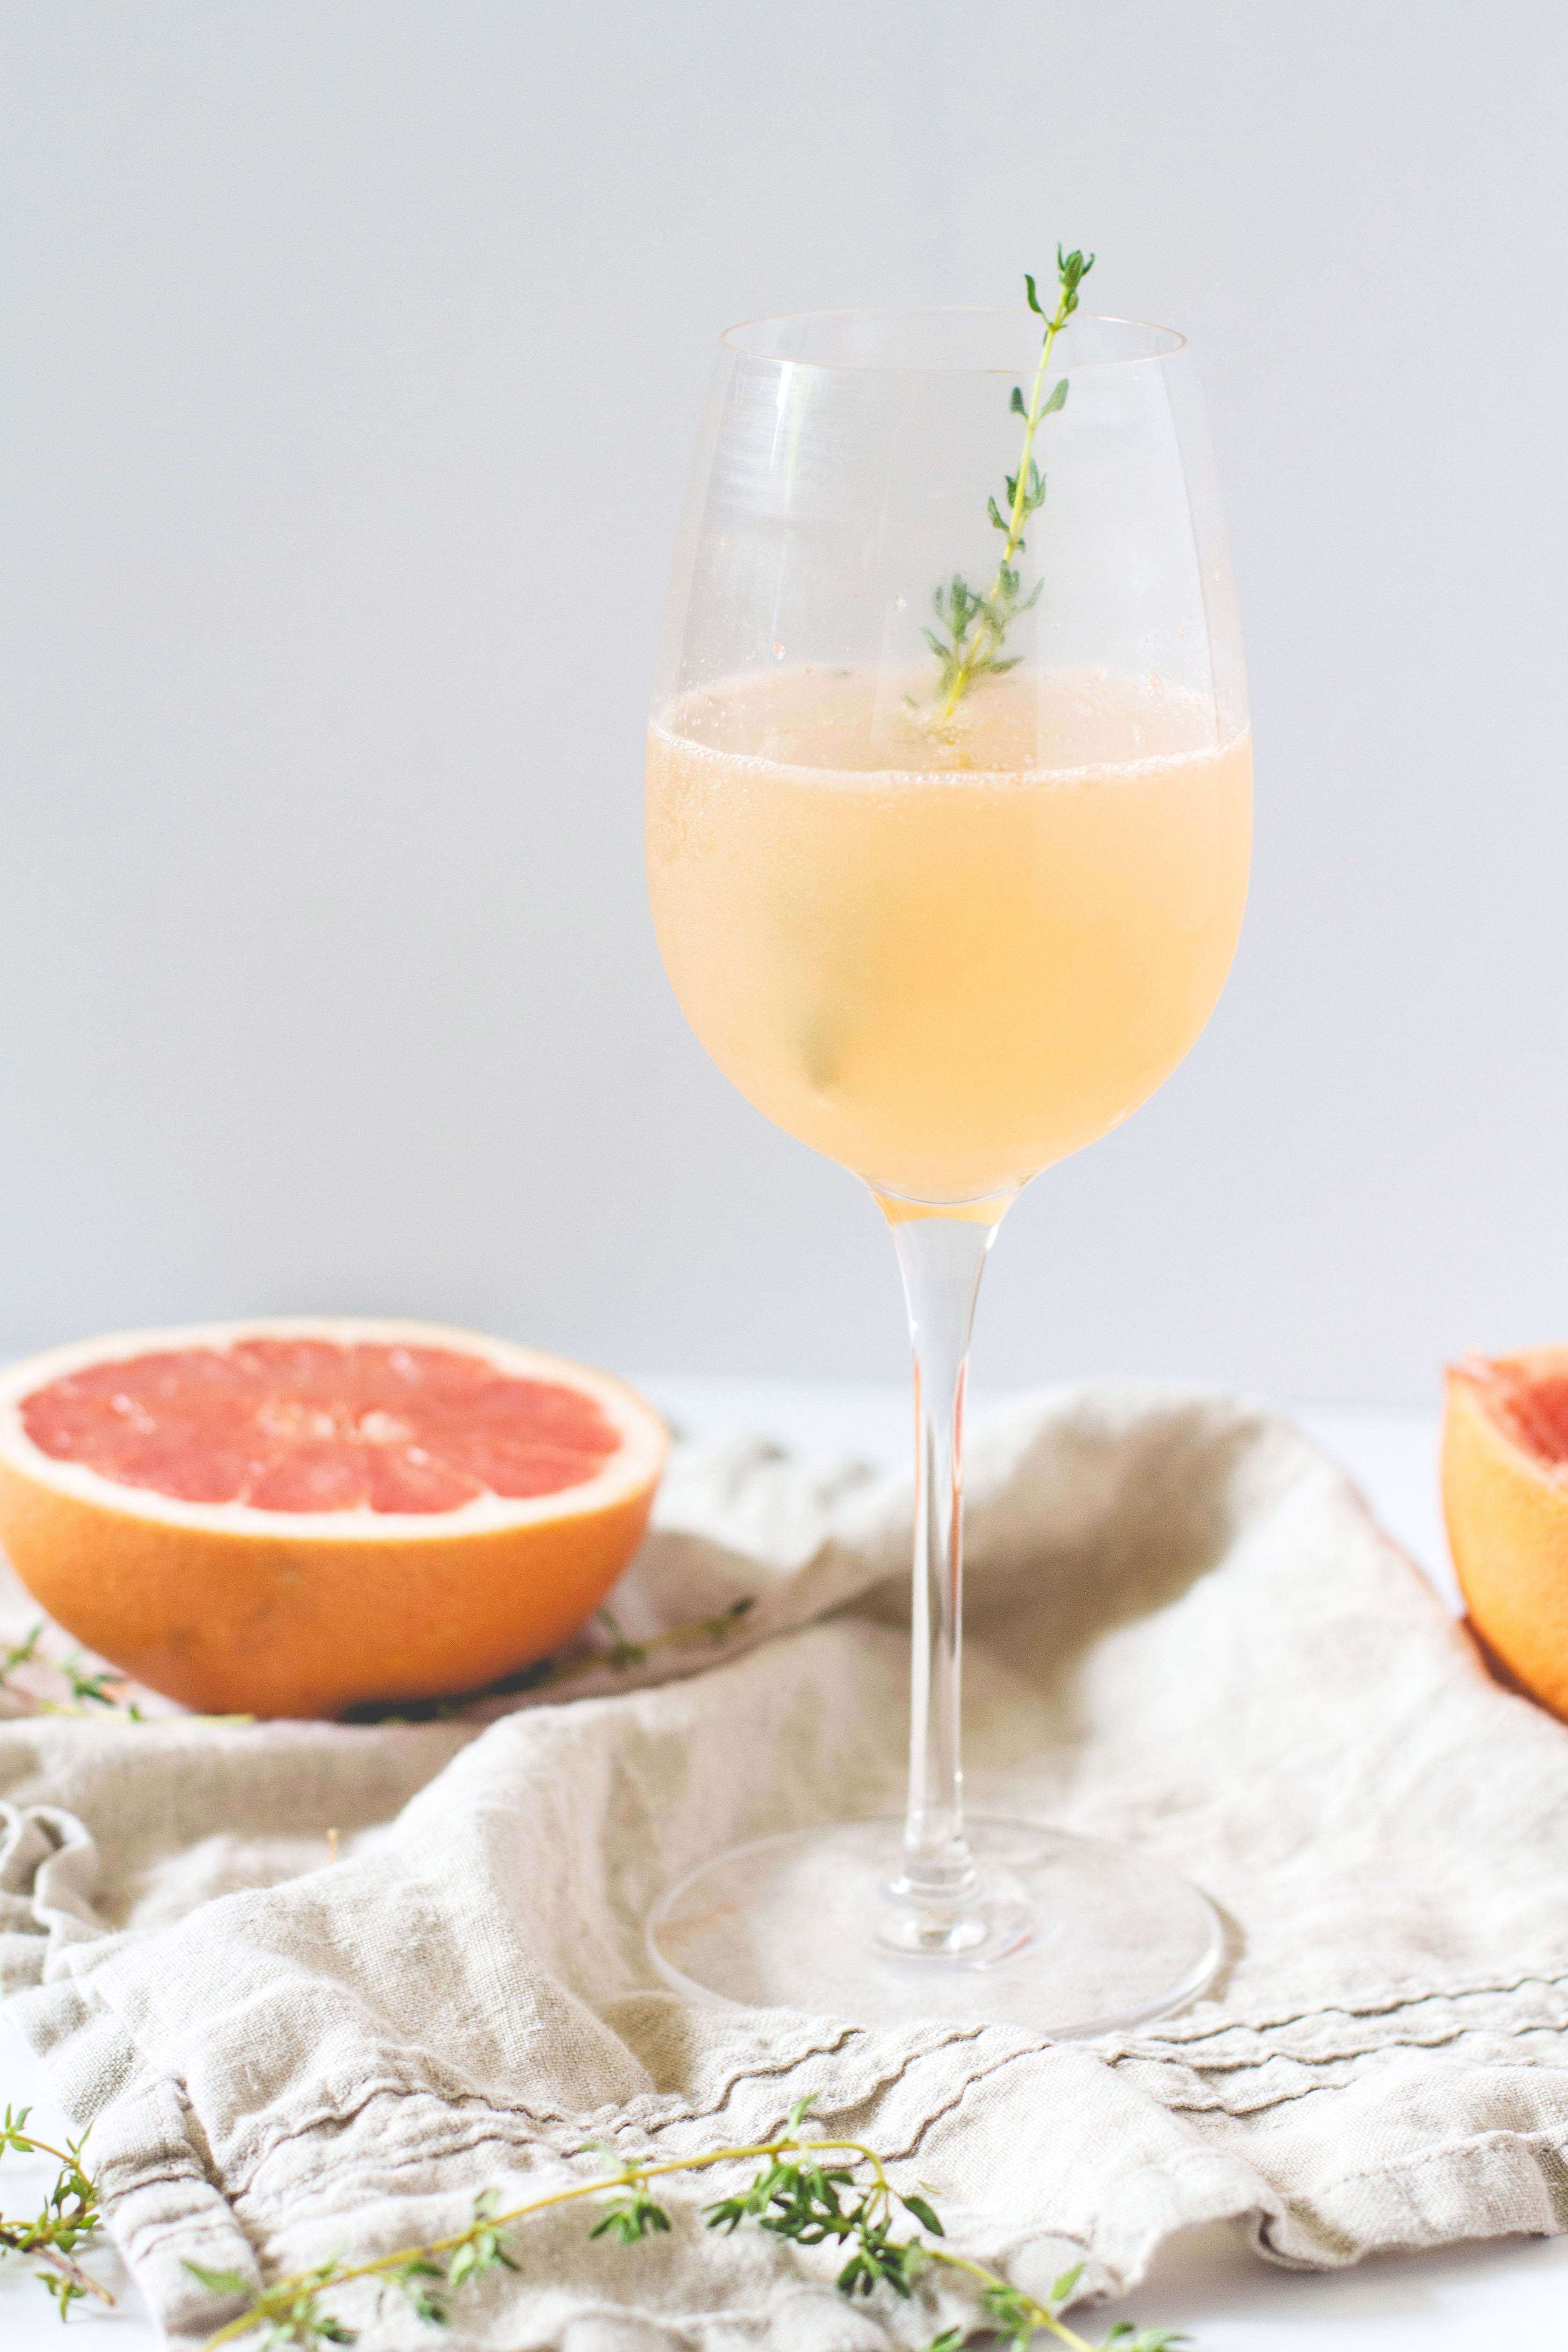 Prosecco and Grapefruit Cocktail